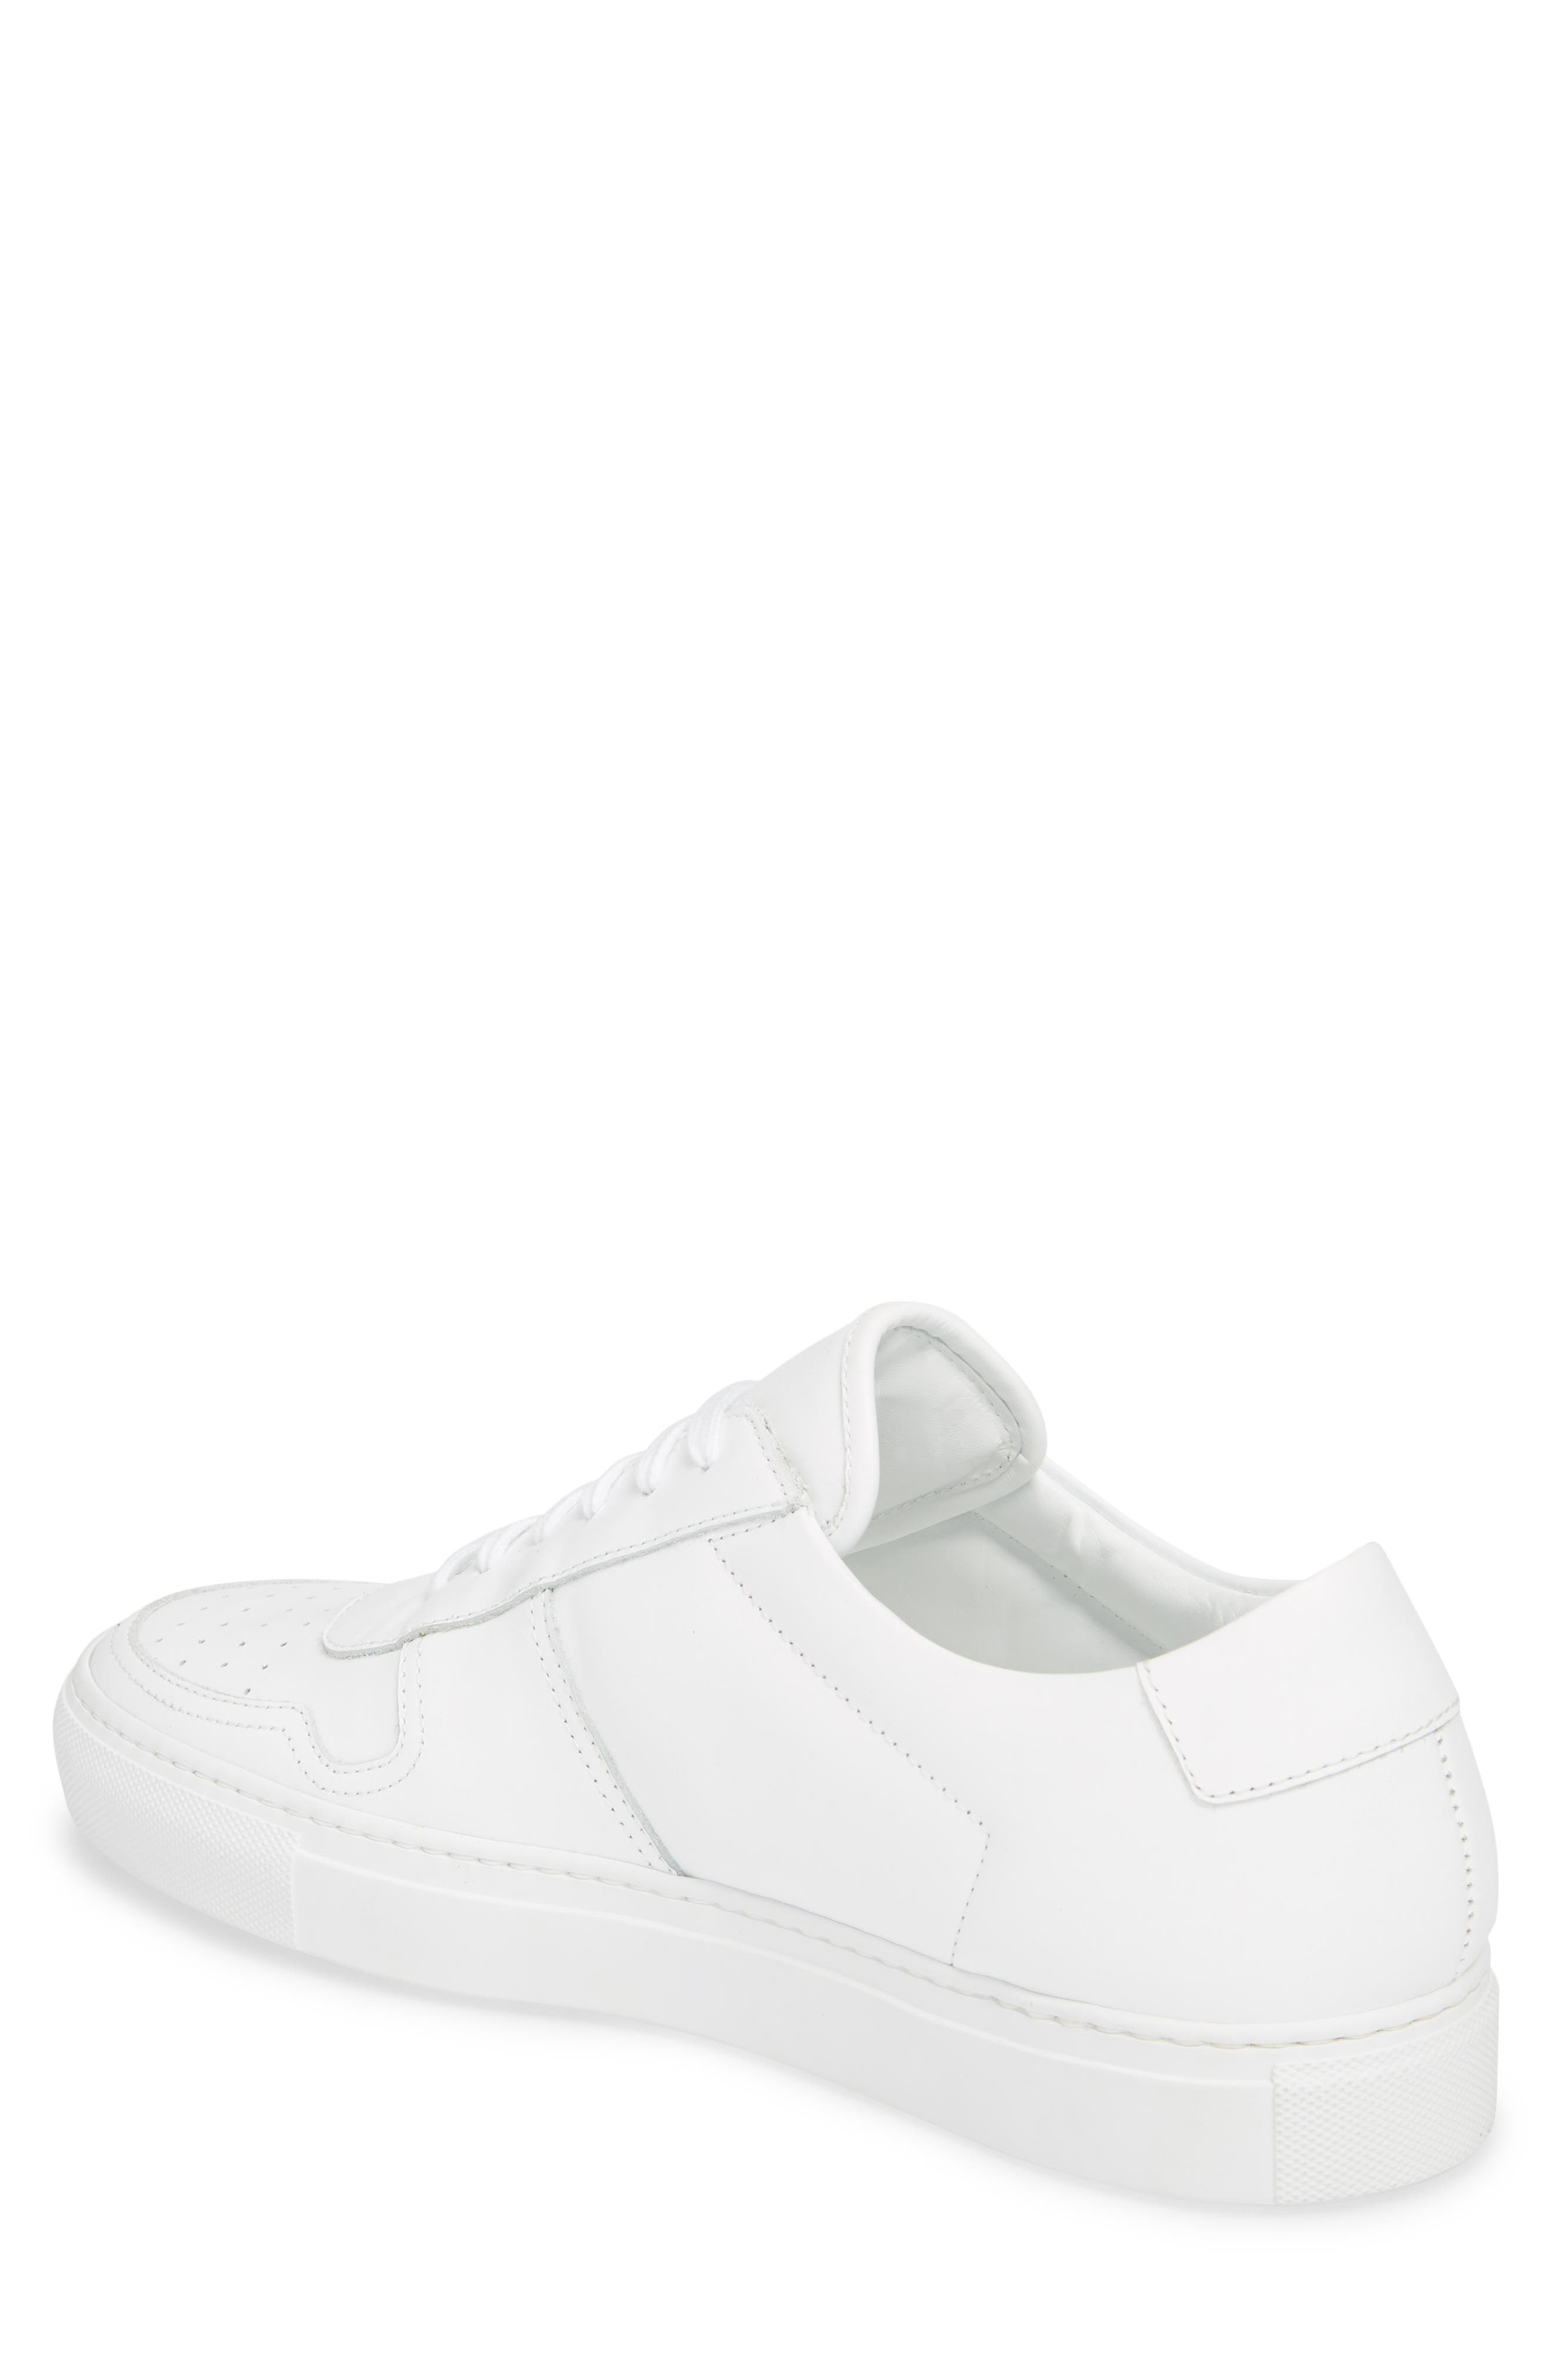 Bball Low Top Sneaker,                             Alternate thumbnail 2, color,                             WHITE LEATHER